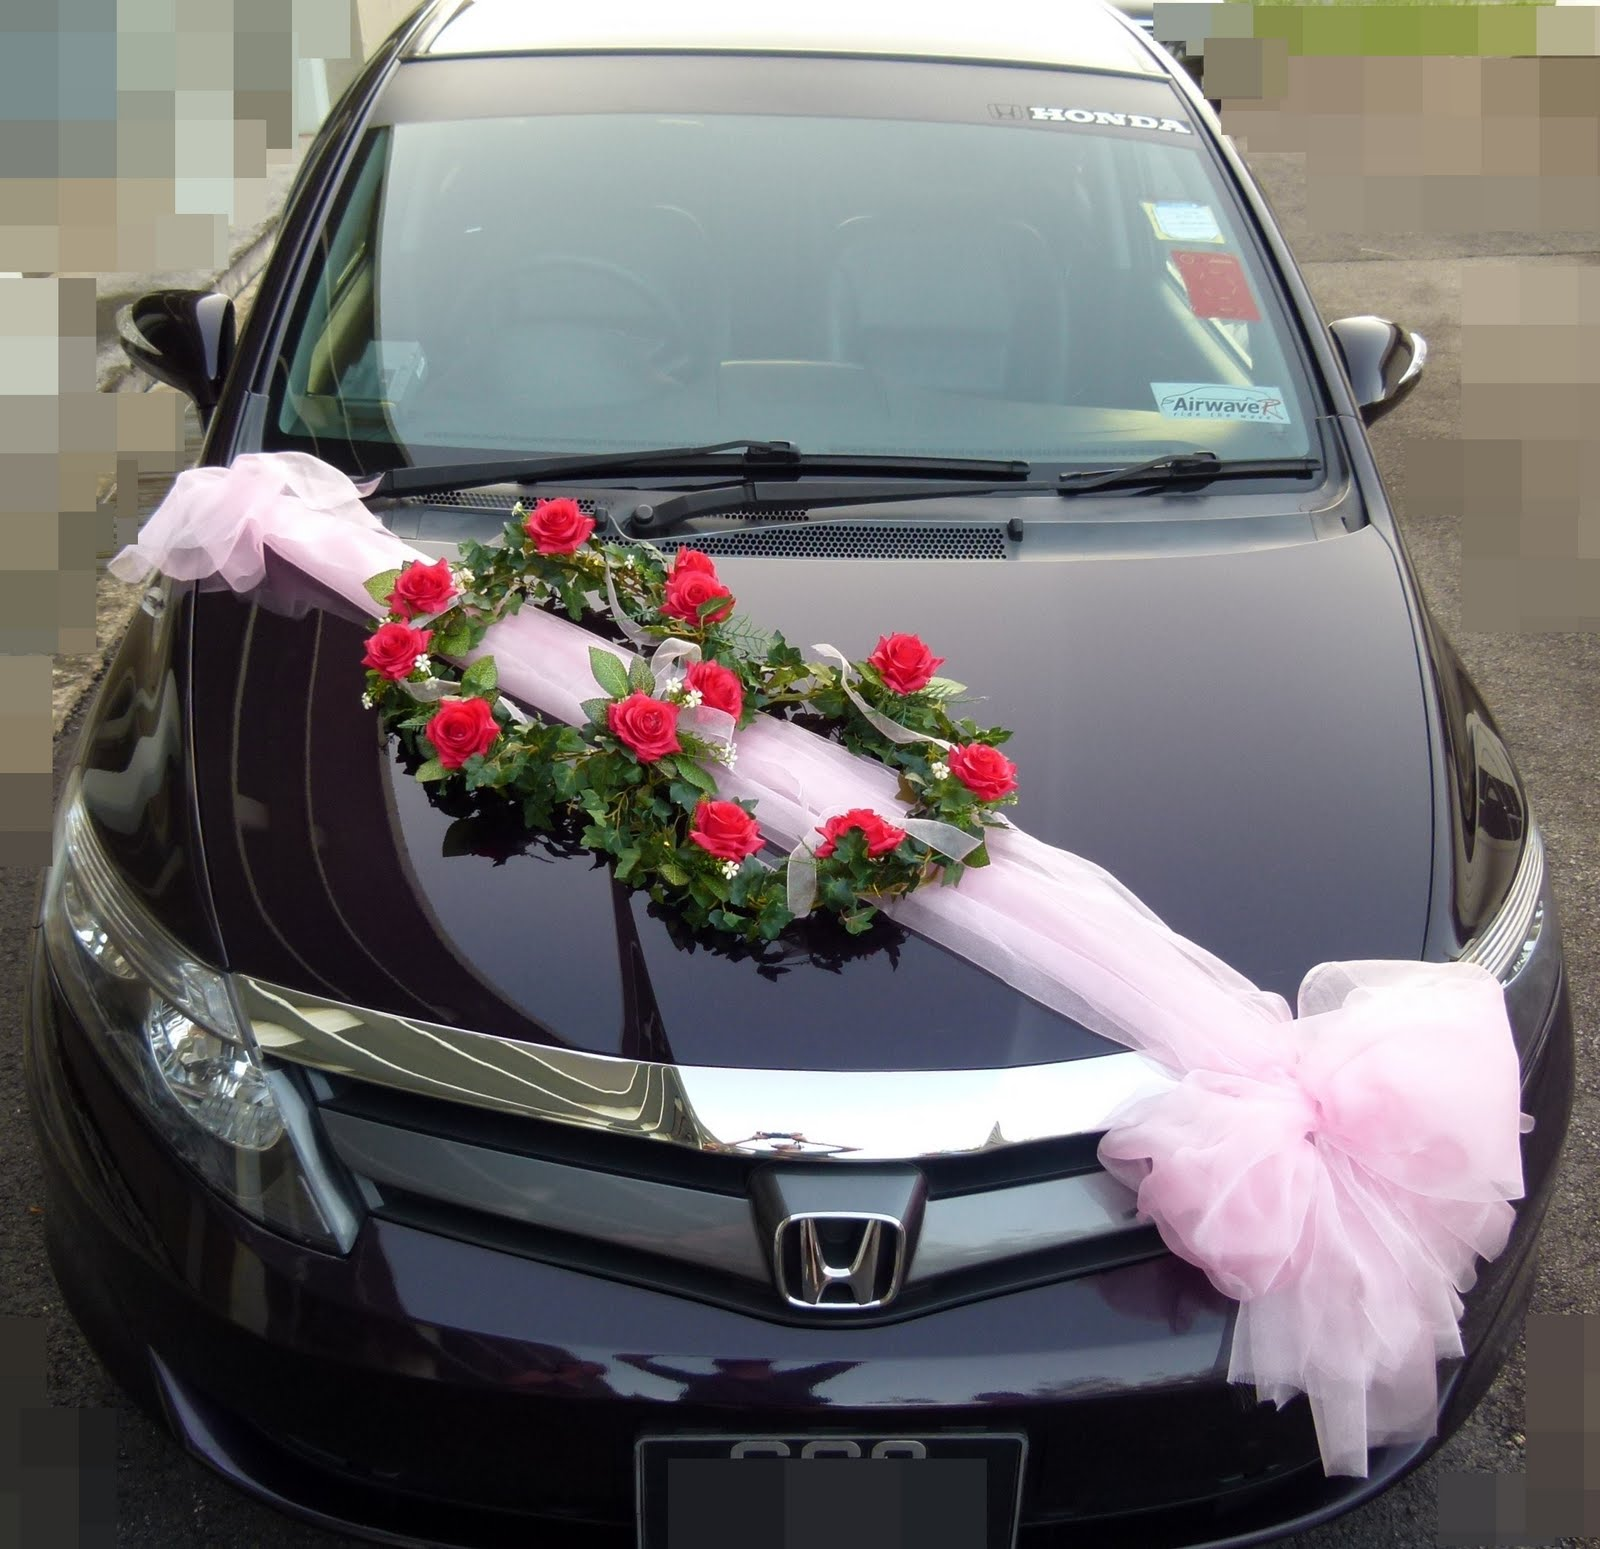 Wedding Car Decoration Ideas Funny : Lynette u wedding car decorations